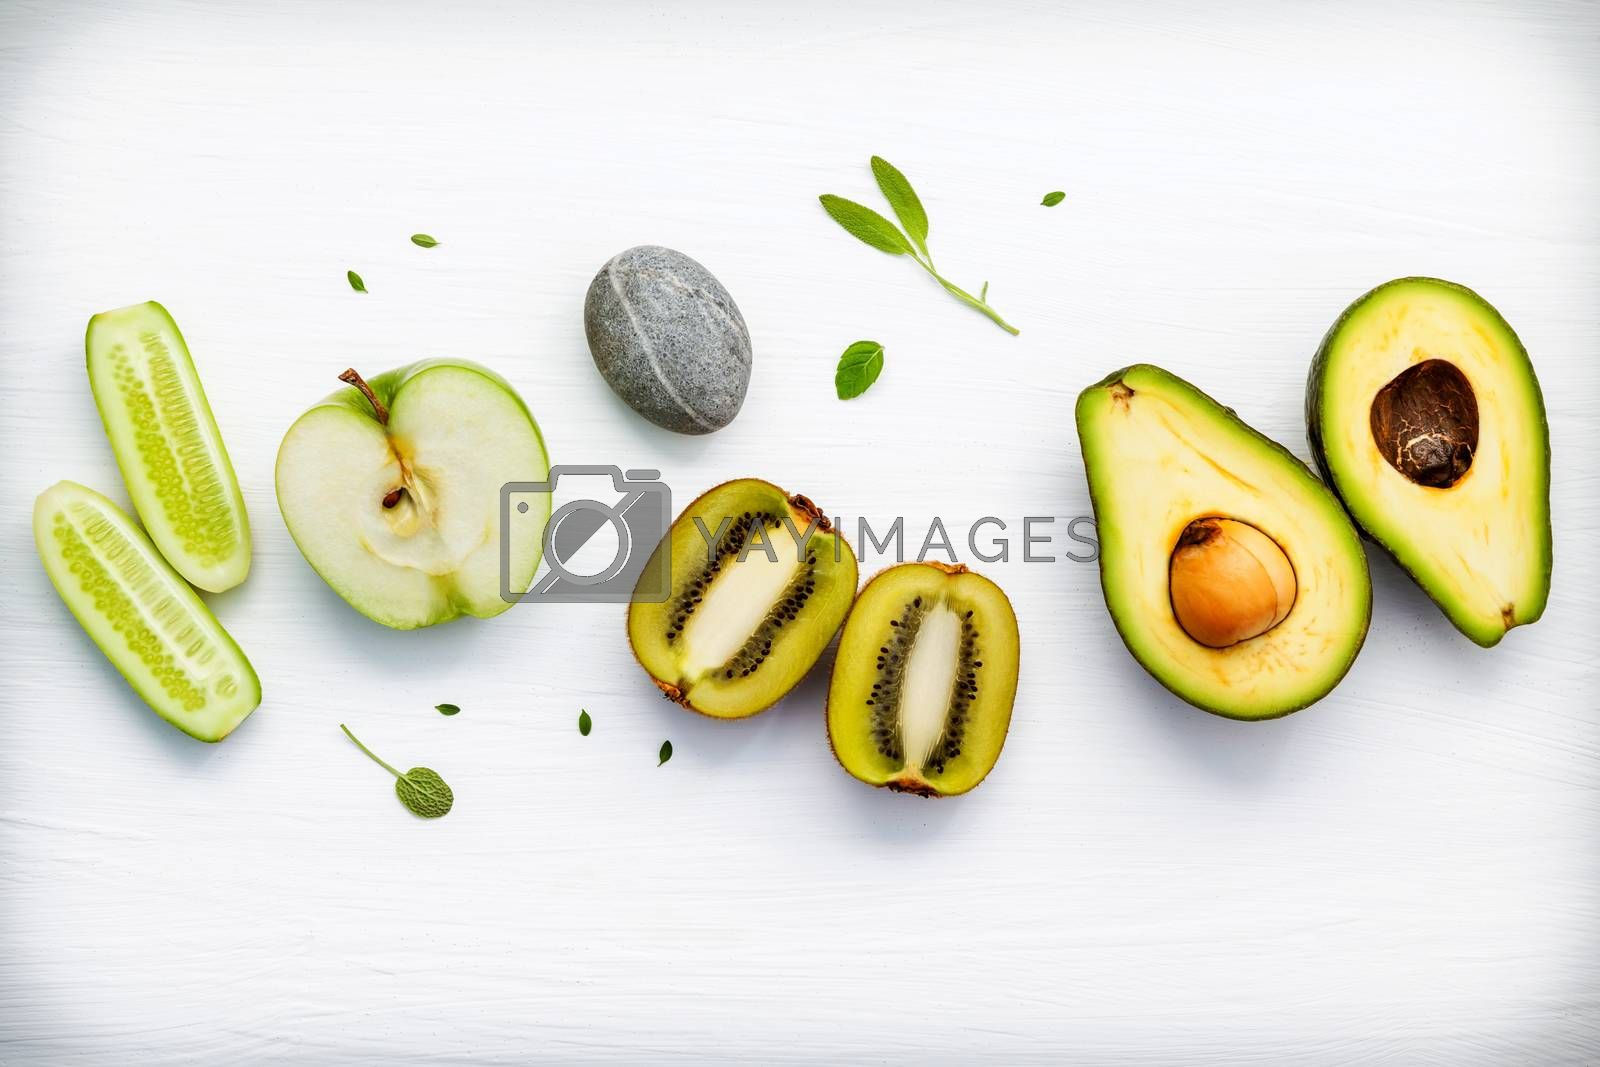 Homemade skin care and body scrubs with green natural ingredients cucumber , avocado ,green apple,kiwi, and spa stone setup on white wooden background with flat lay. Zen spa and oriental spa theme.